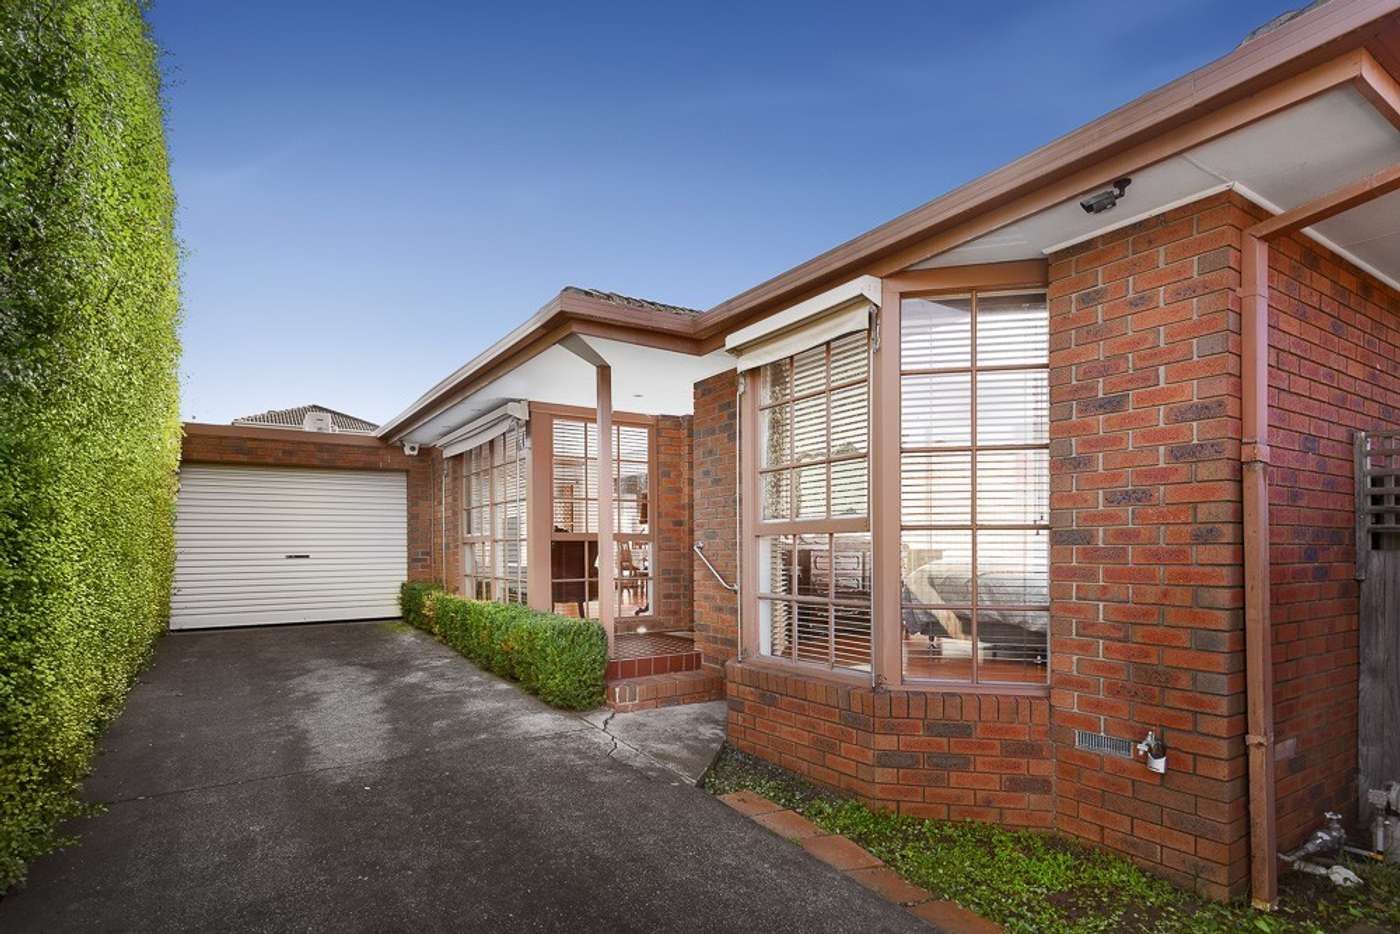 Main view of Homely unit listing, 2/34 Holyrood Avenue, Strathmore VIC 3041